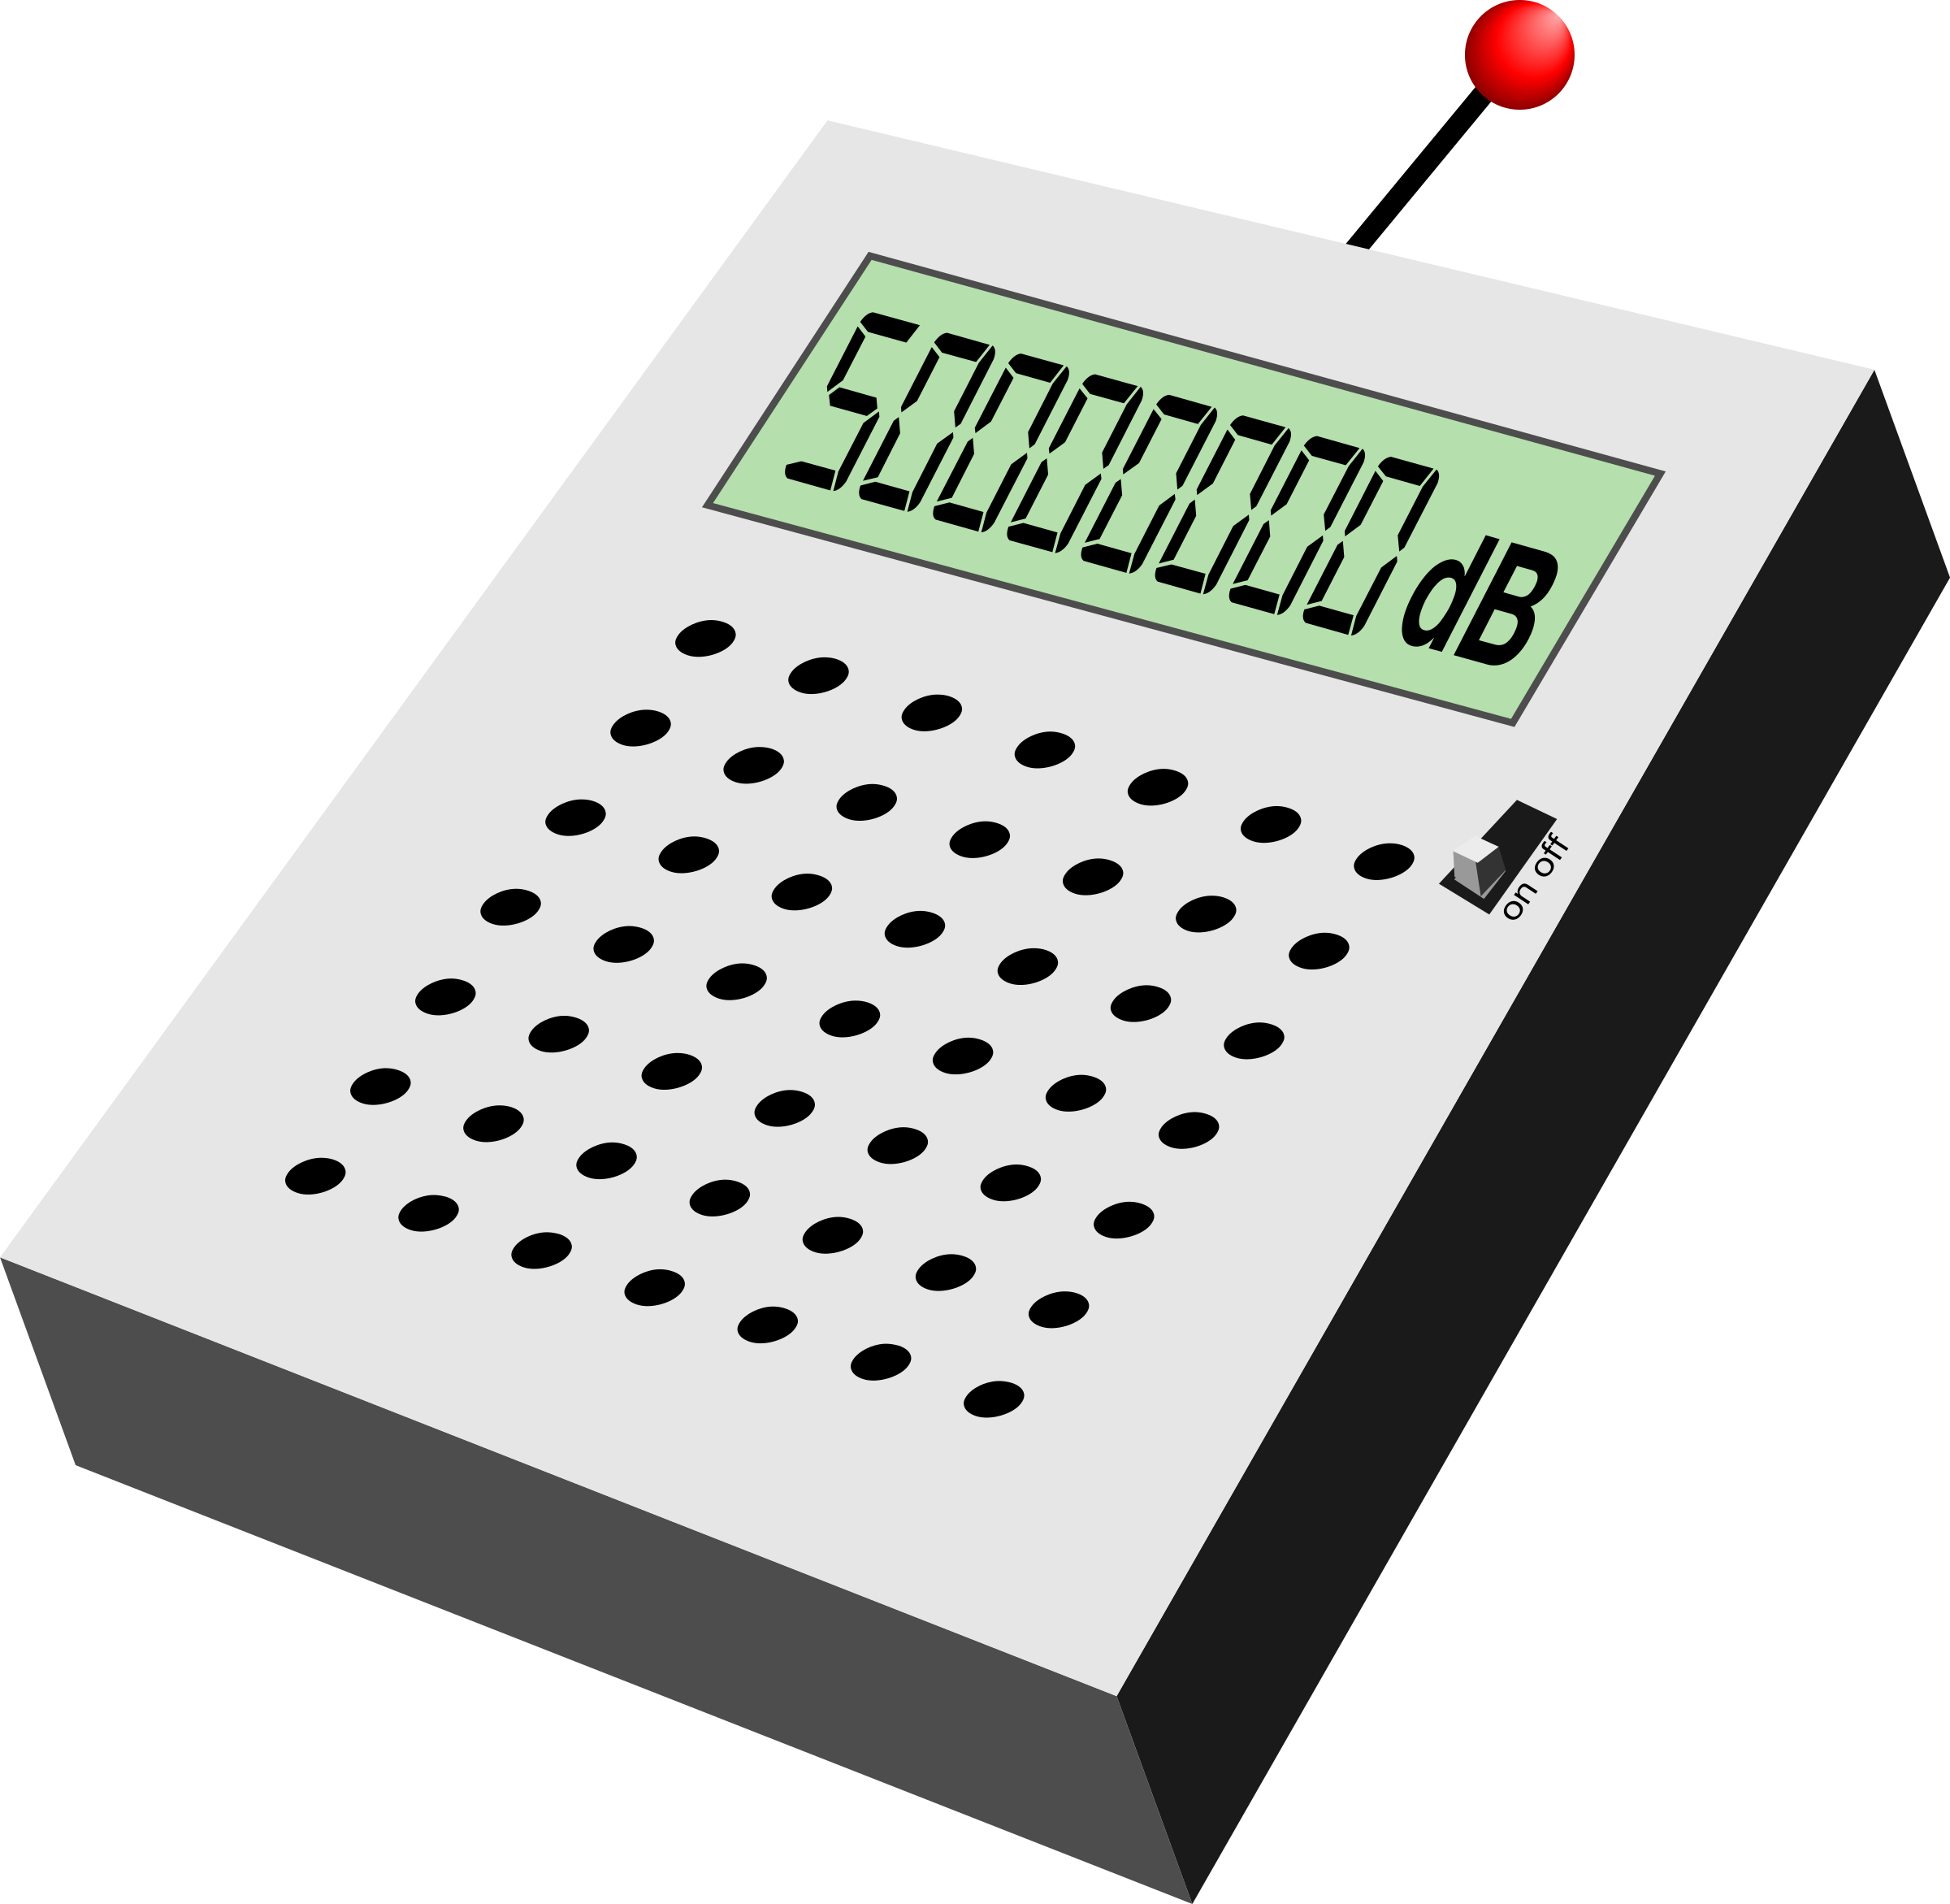 Electronic decibel measurer by jhnri4